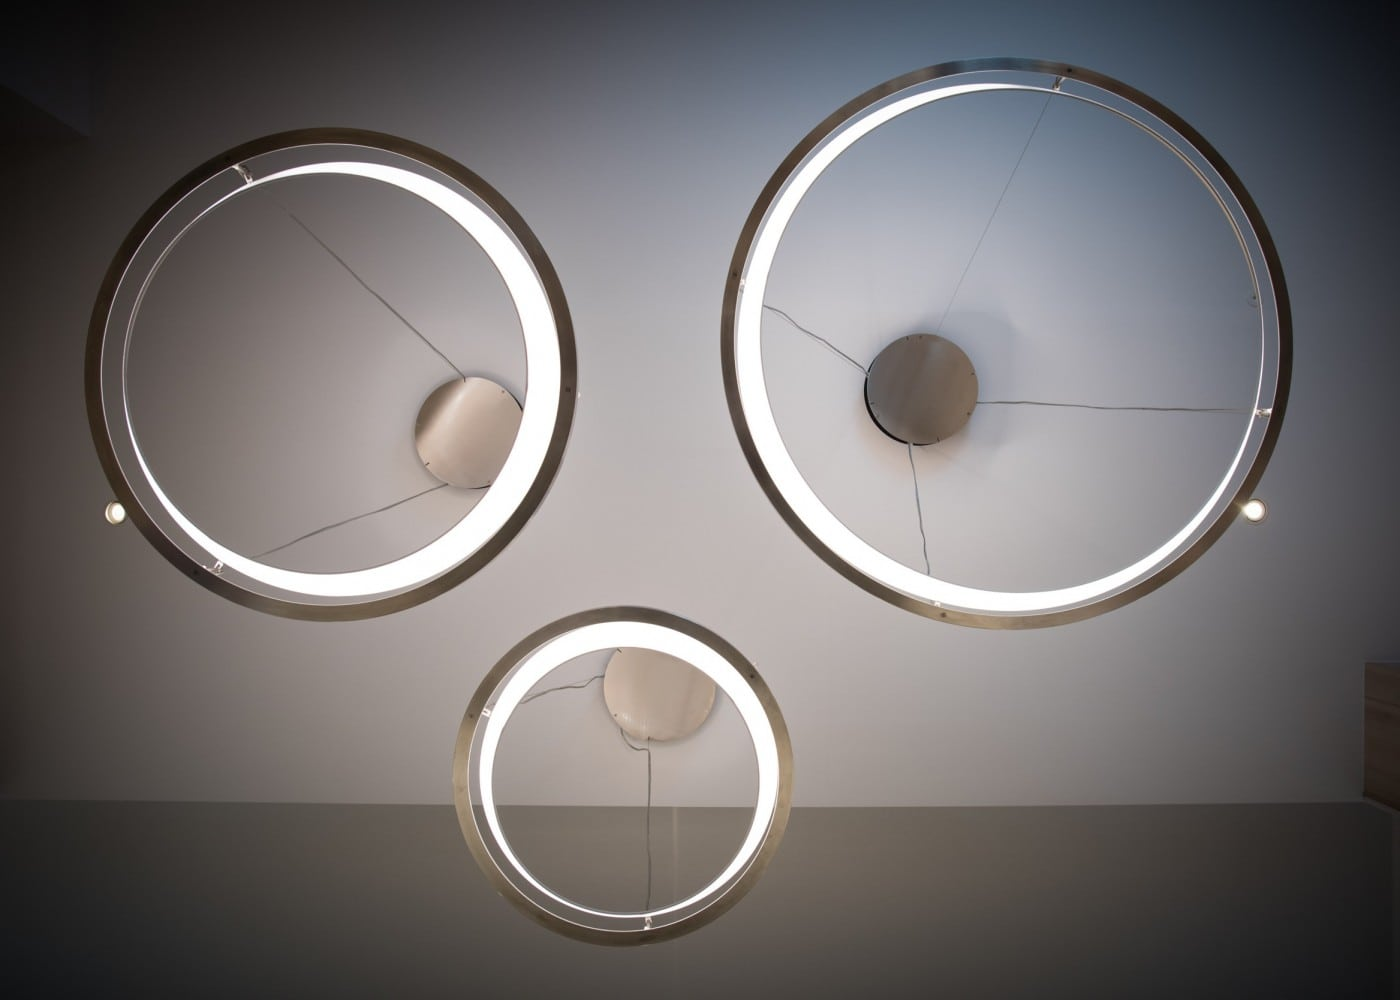 retail lighting design: Barcelona HP light design